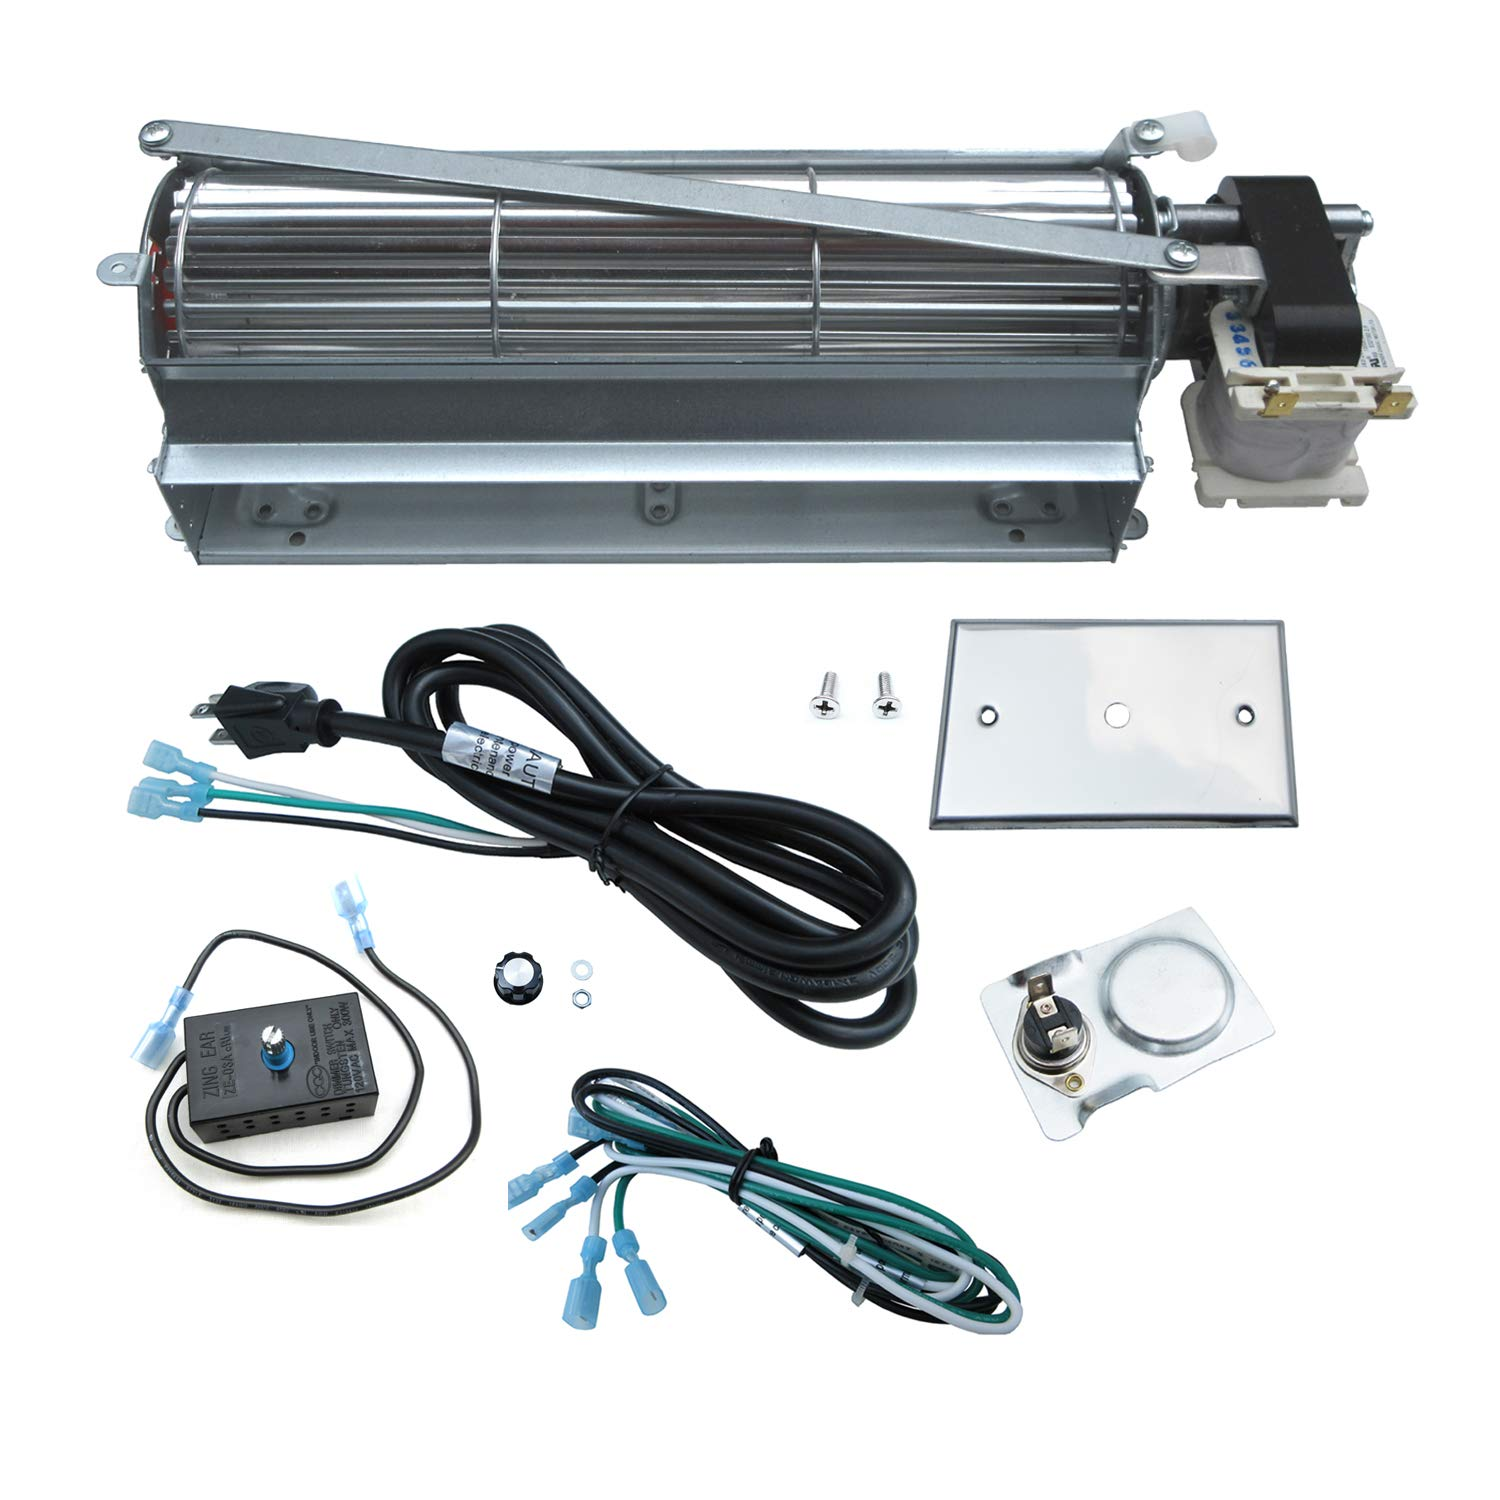 Direct store Parts Kit DN114 Fireplace Blower Kit FK4 GFK4 R7-RB74K HB-RB74K for Heatilator Rotom by Direct store